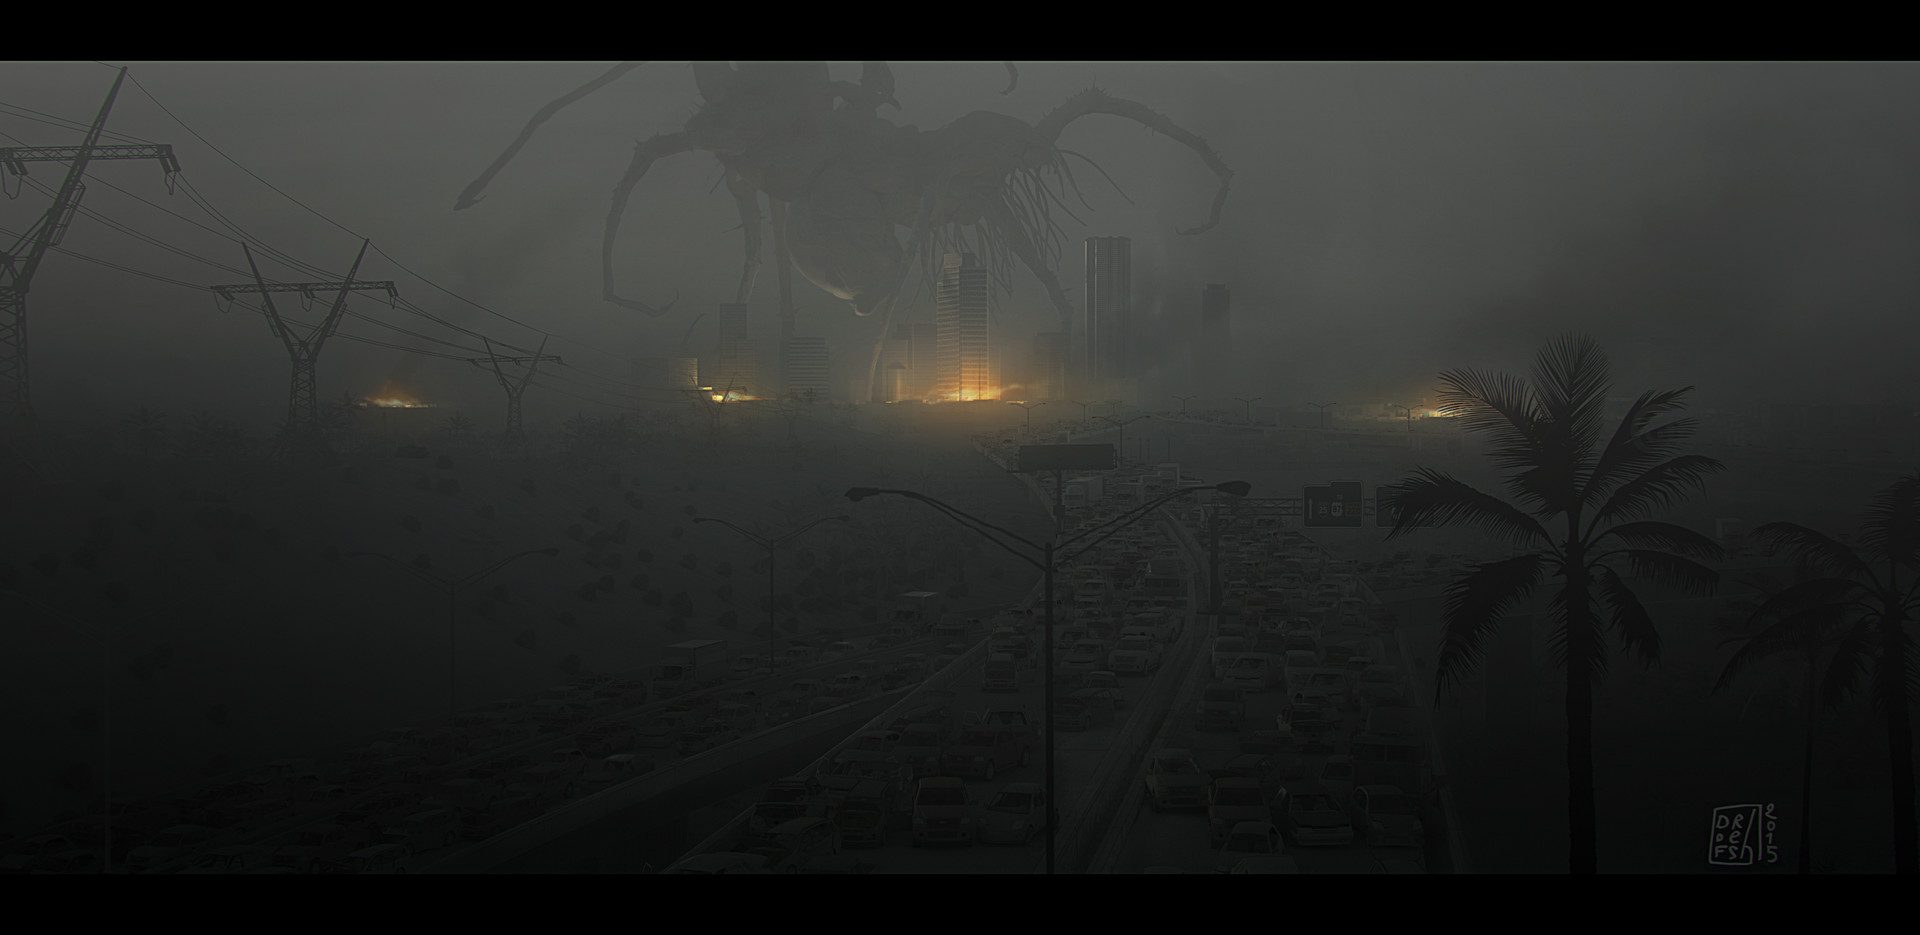 H. P. Lovecraft's 'The Call of Cthulhu' Concept Art by Ronan Le Fur